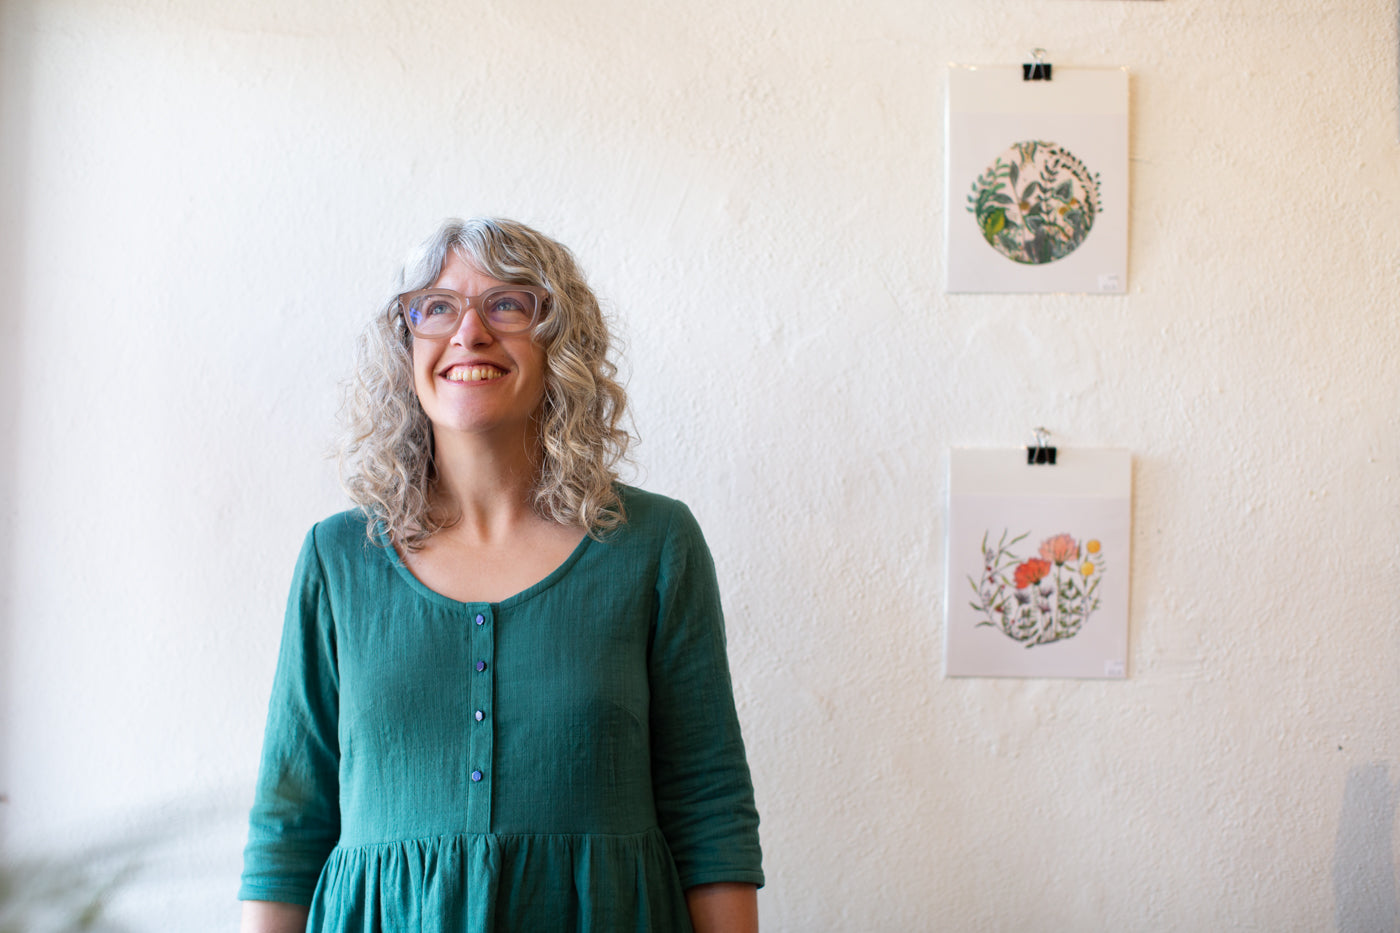 Jaime wearing a Japanese Cotton Slub Double Gauze dress in the Spruce Color.  Jaime is facing the camera, smiling, lookin up, in front of a white wall with two images hanging on the wall behind her.